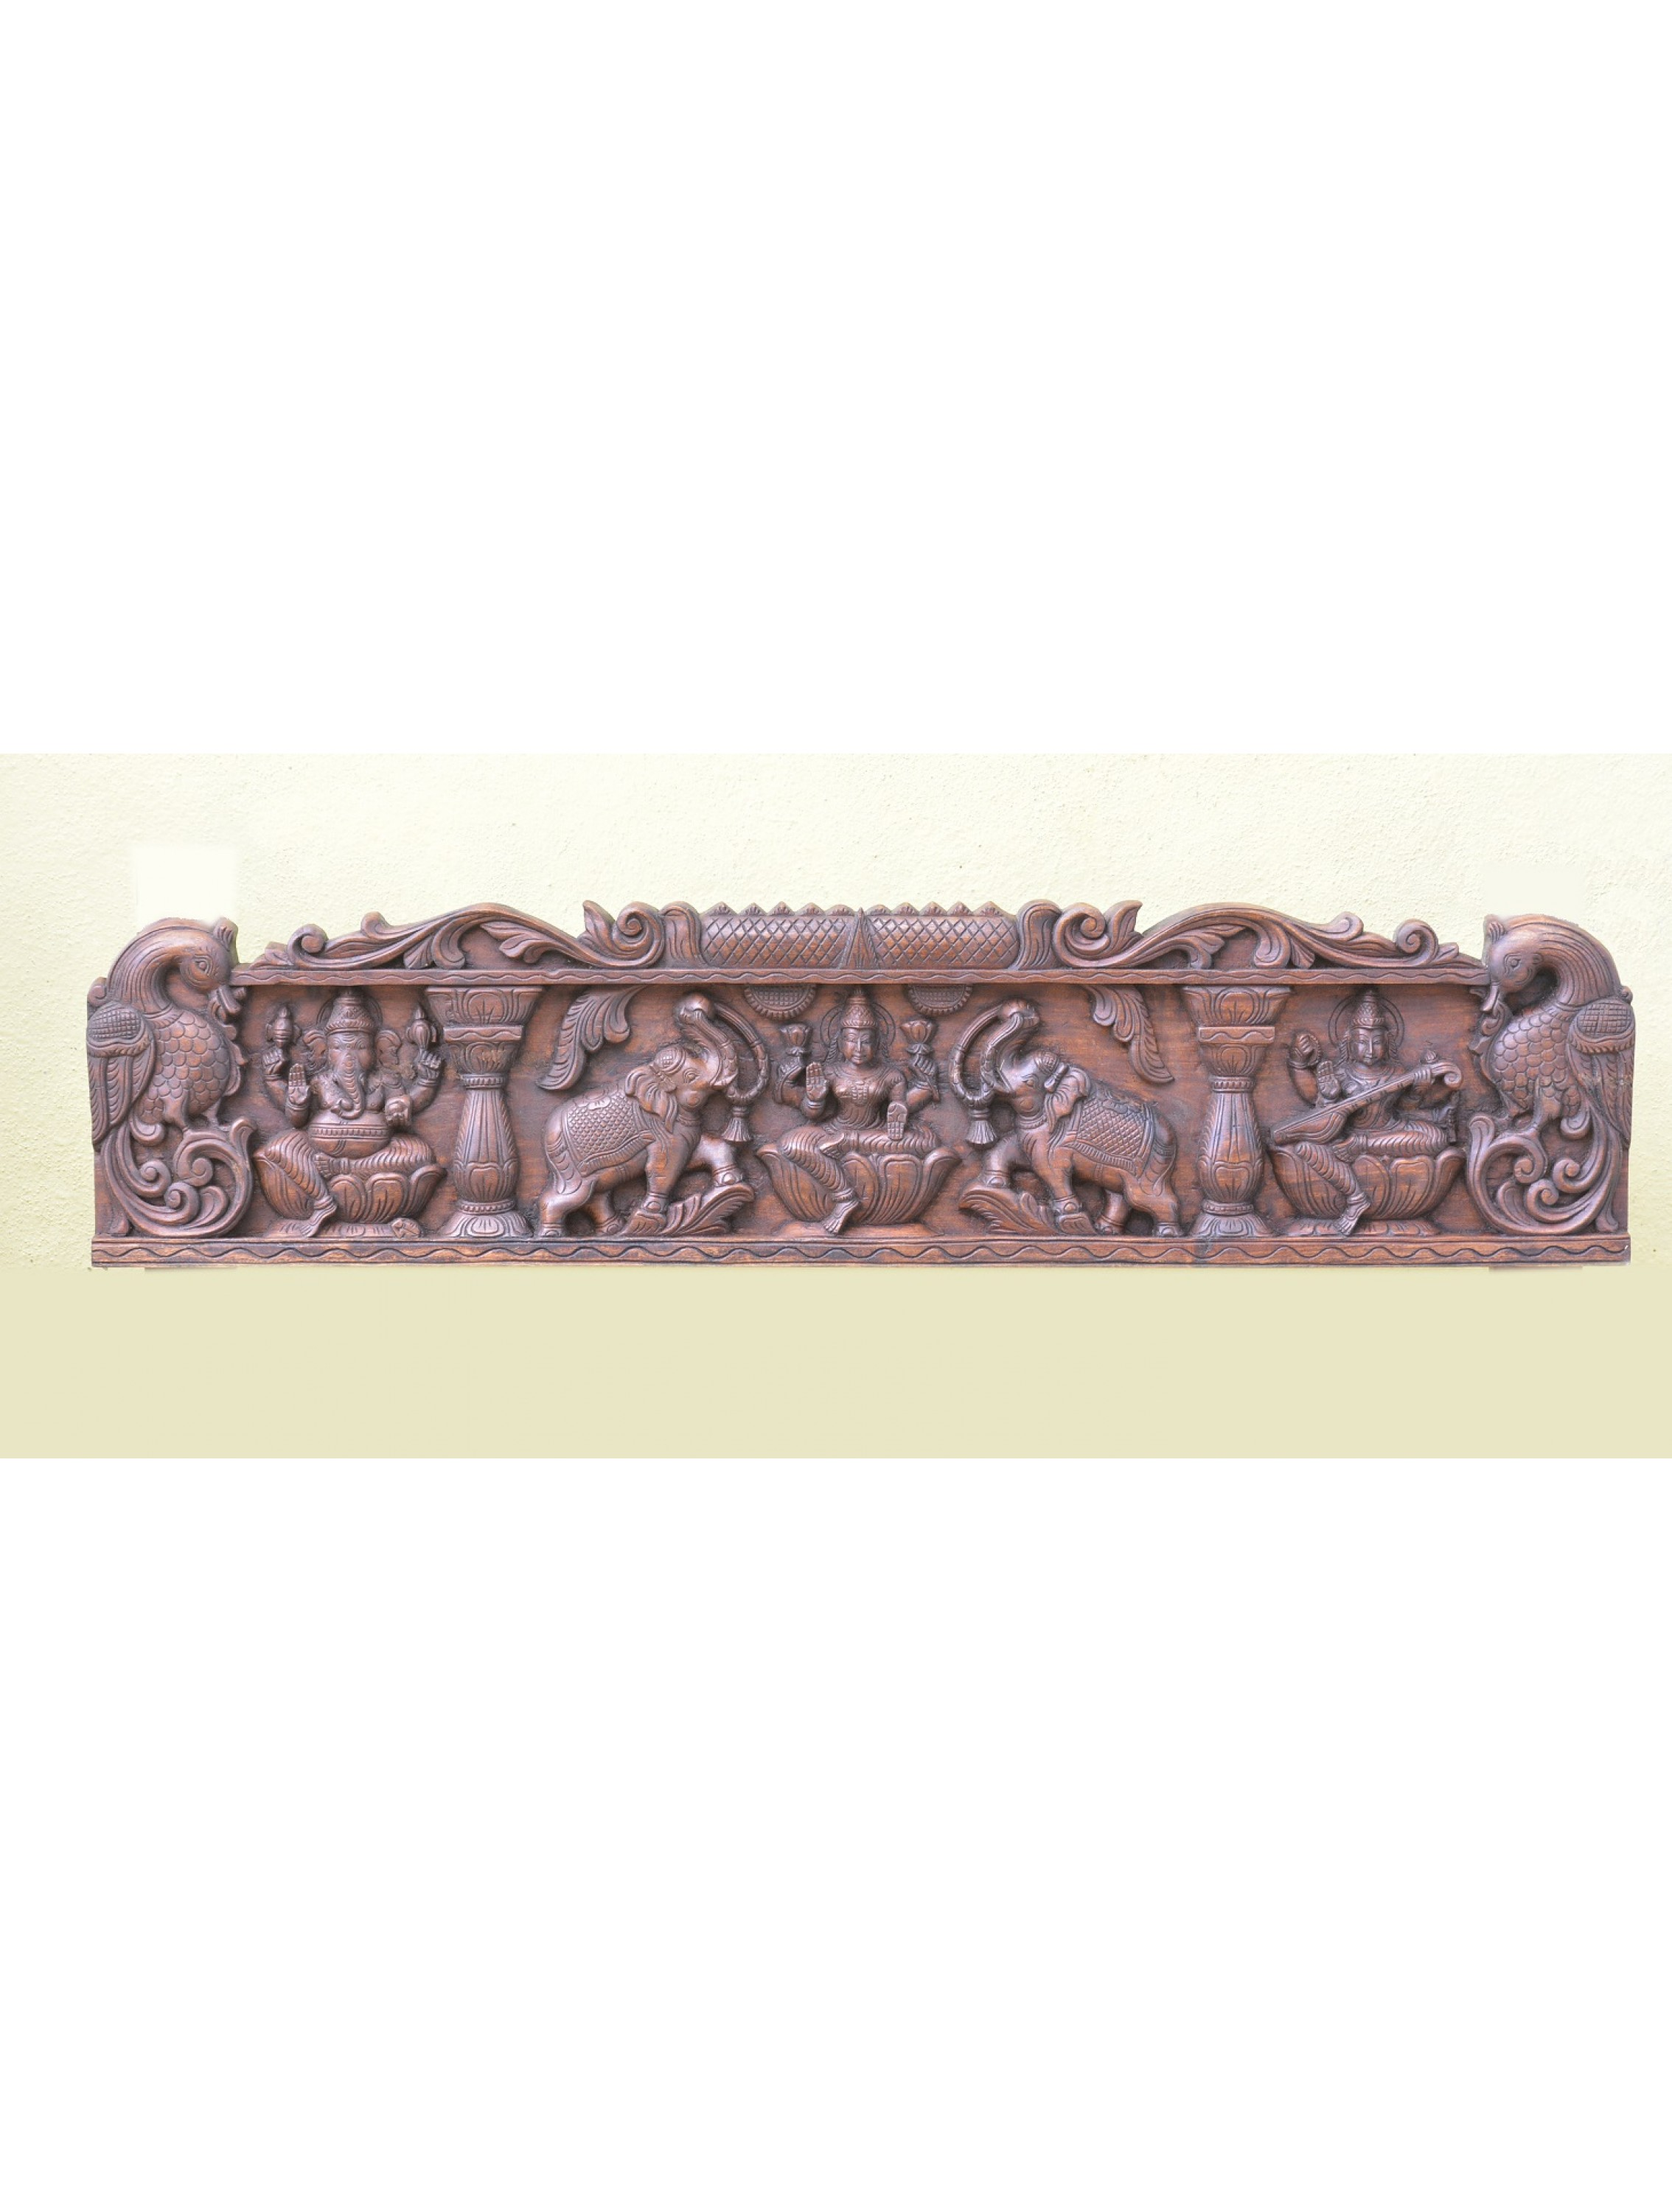 Gajalakshmi With Ganesh And Saraswathi Wooden Wall Mount Panel